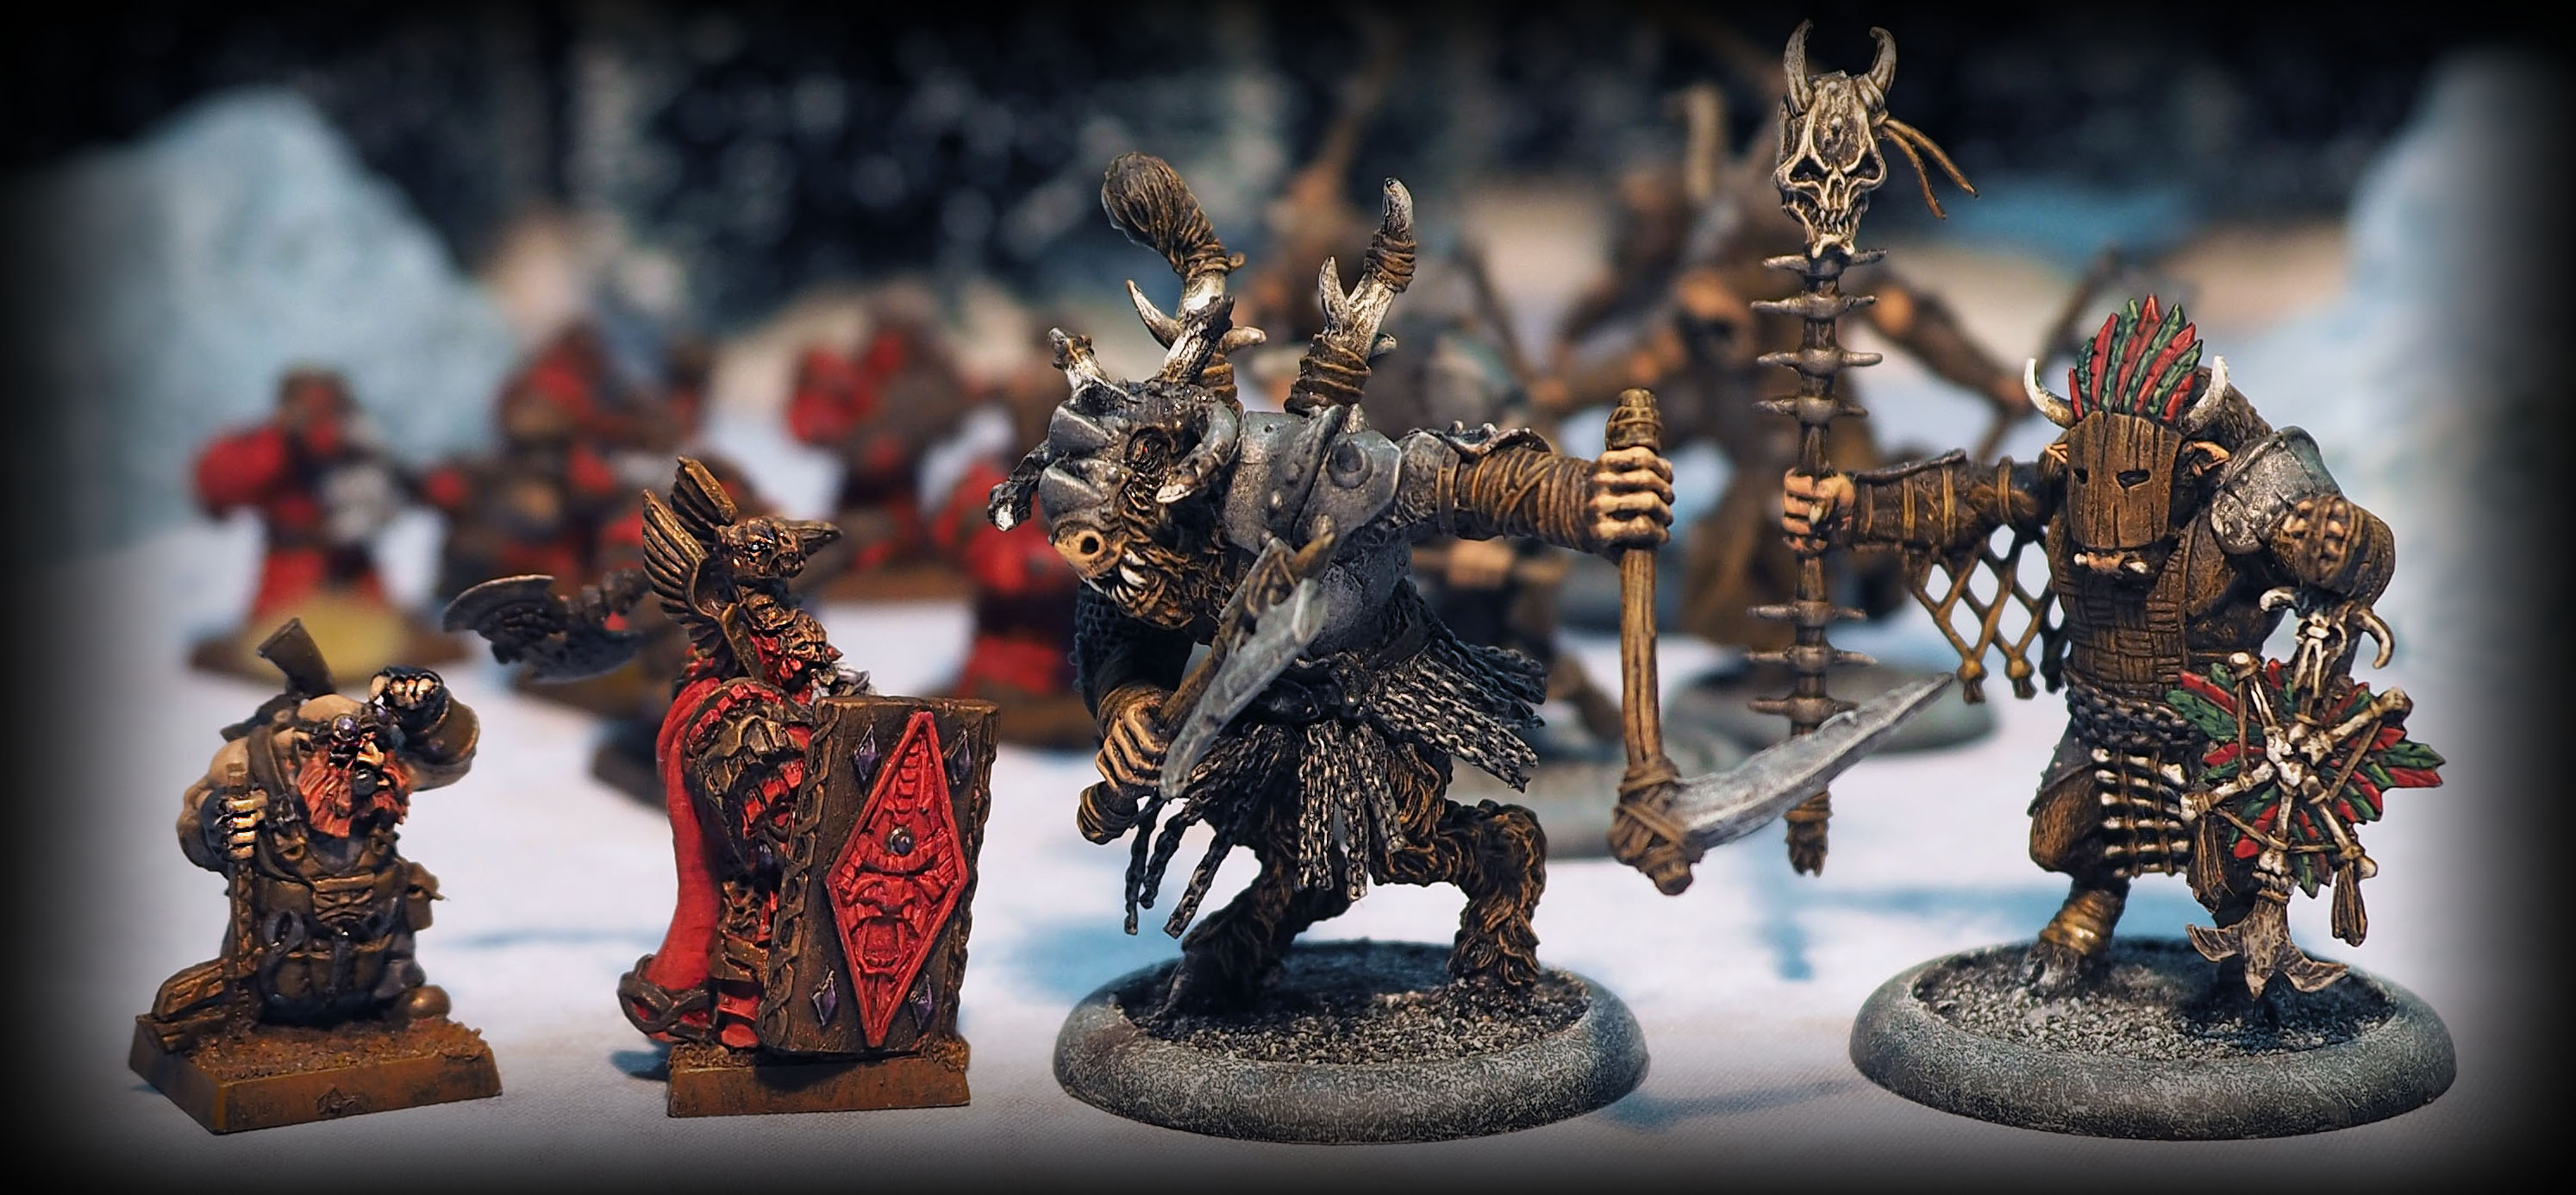 Avatars of War (left) and Megalith Games (right)